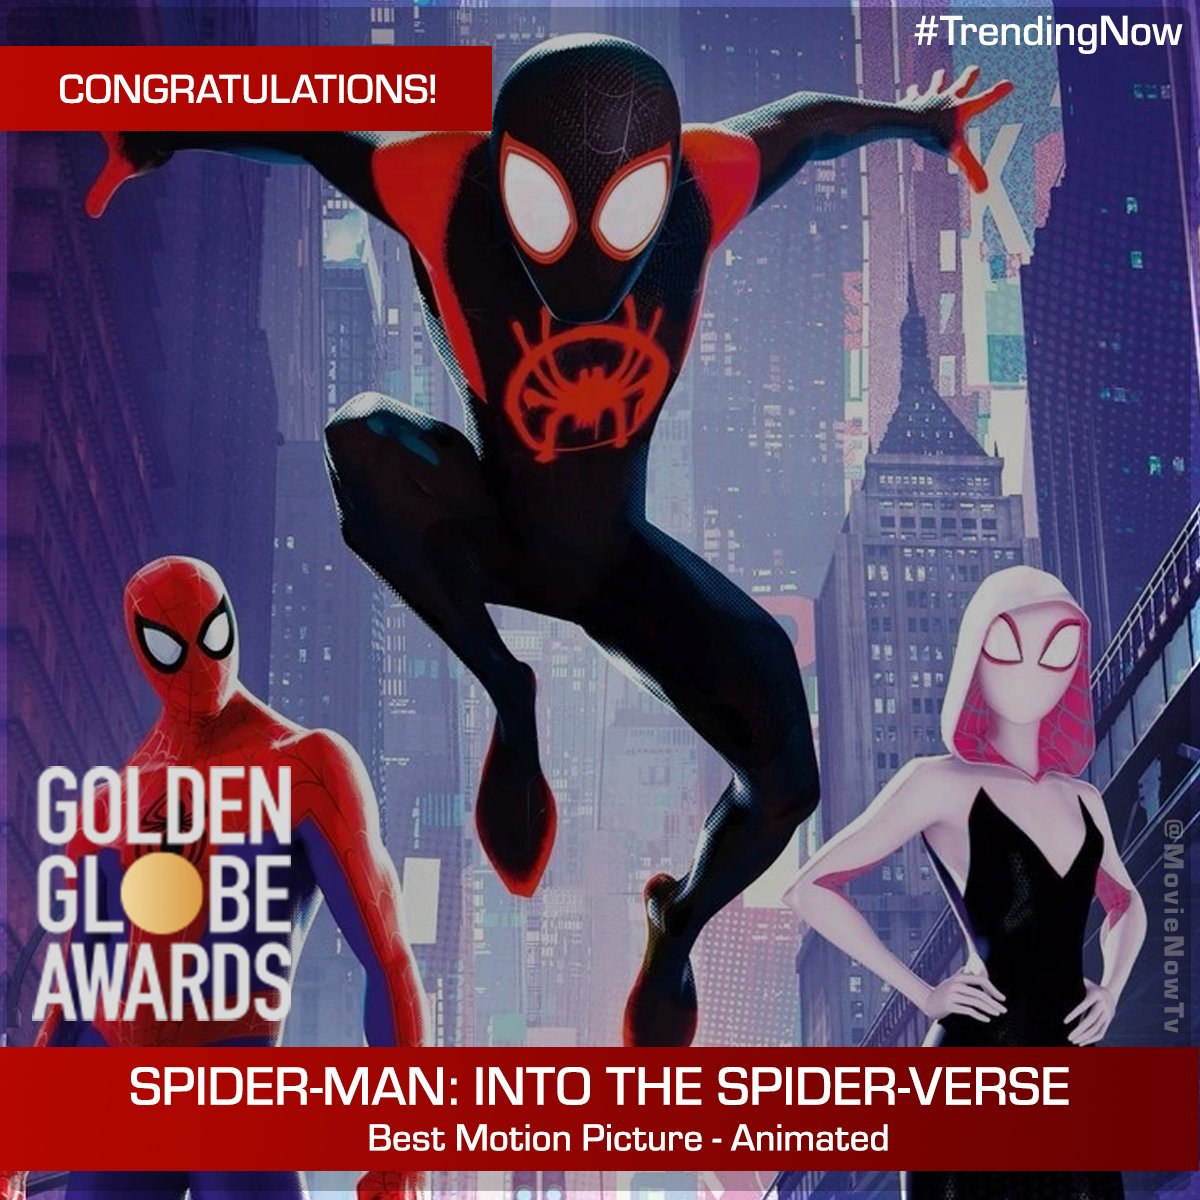 Looks like the masked men from Spider-Verse have already suited up to receive the Golden Globe 'Best Animated Feature Film'. #TrendingNow #GoldenGlobes